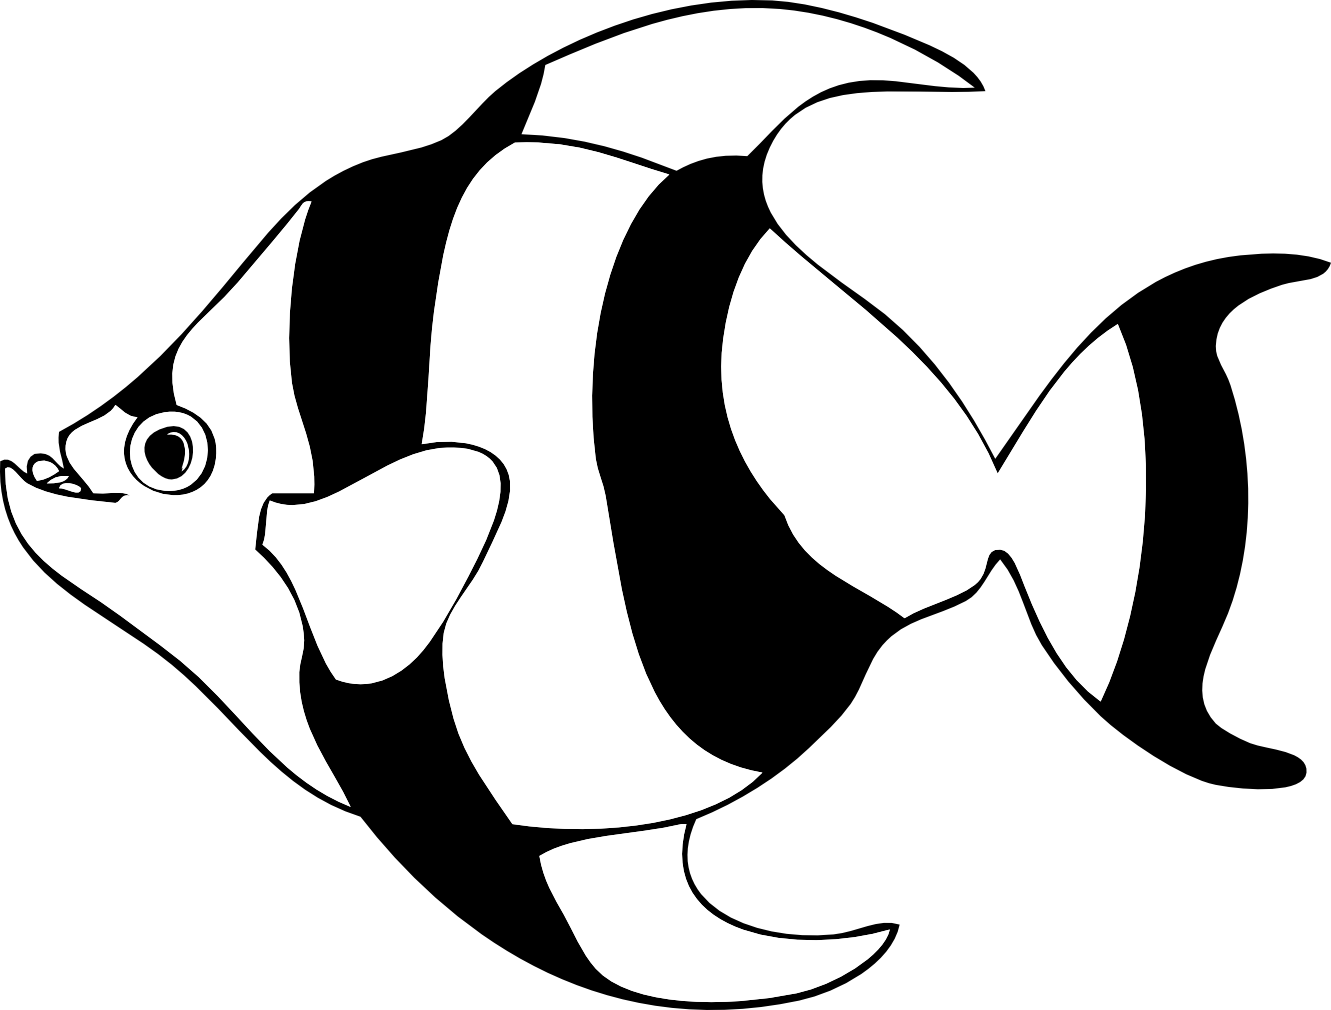 Transparent fish image clipart clip free School Black And White Clipart | Free download best School Black And ... clip free